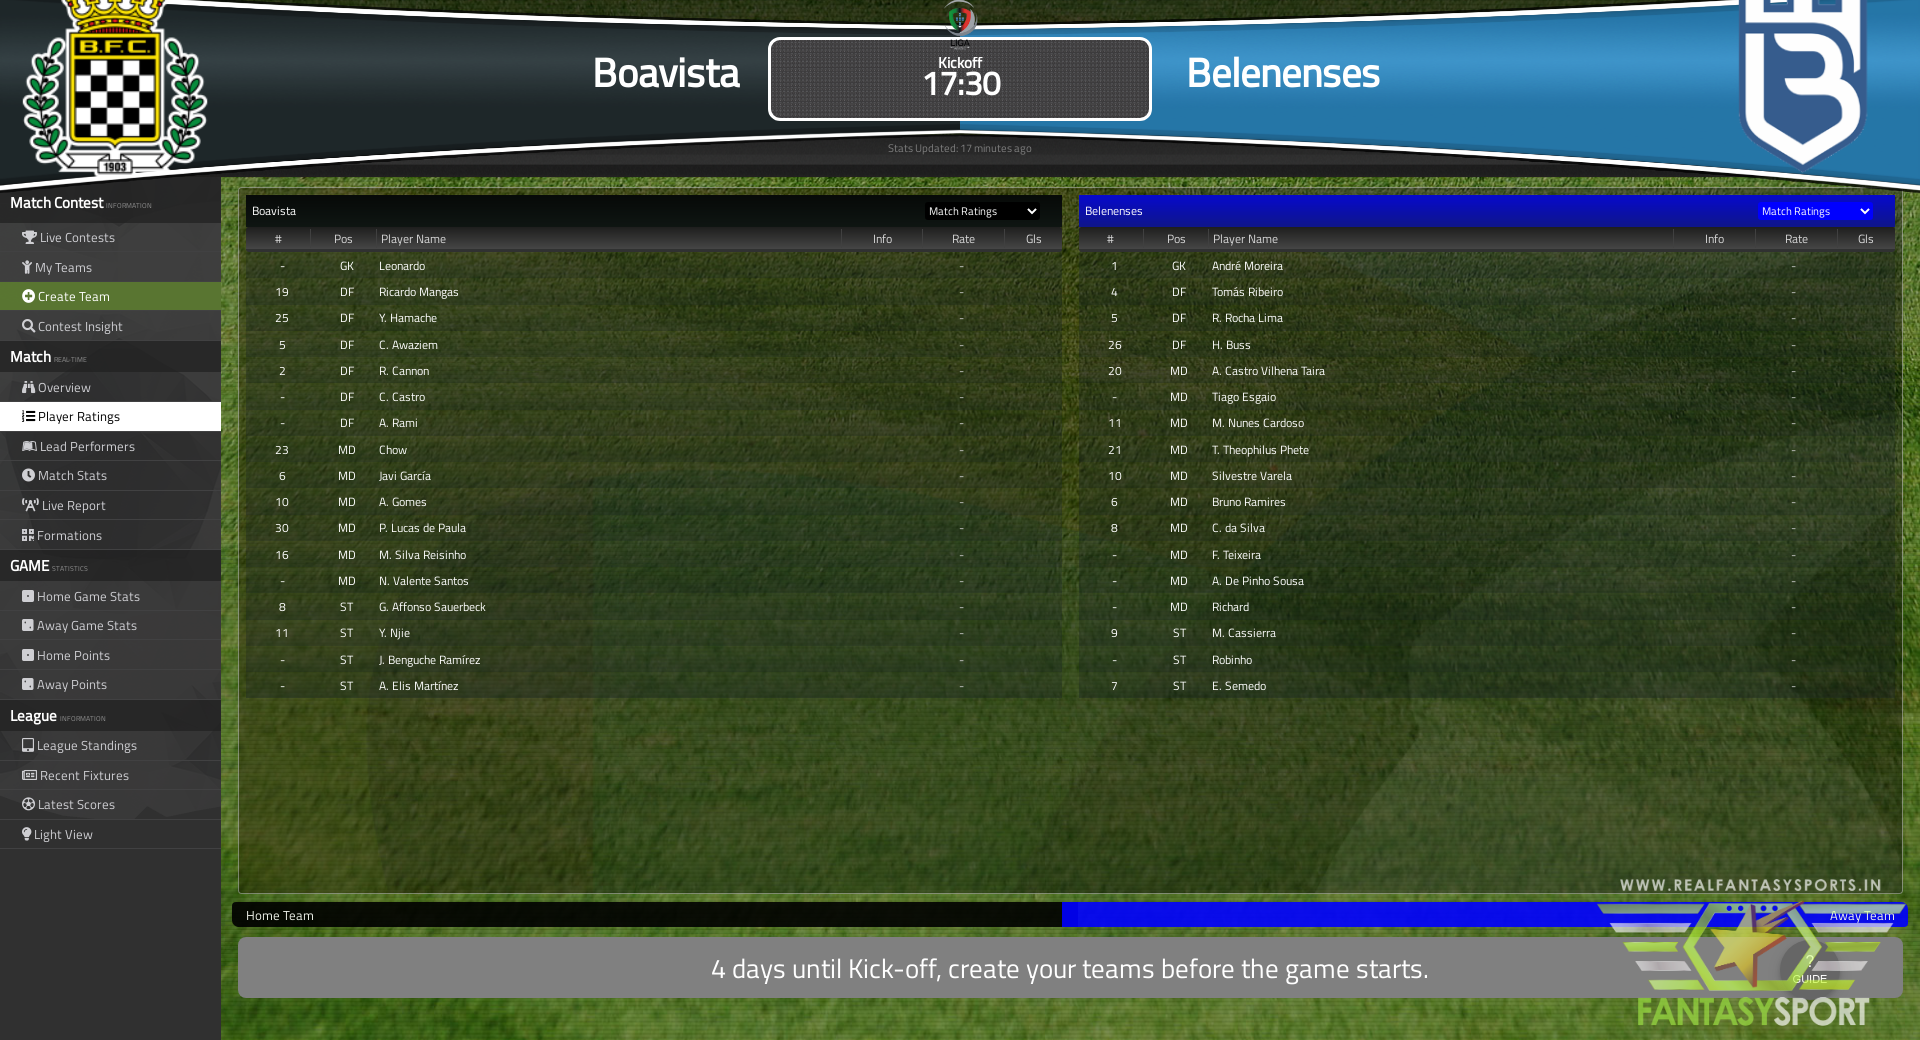 Boavista Vs Belenenses